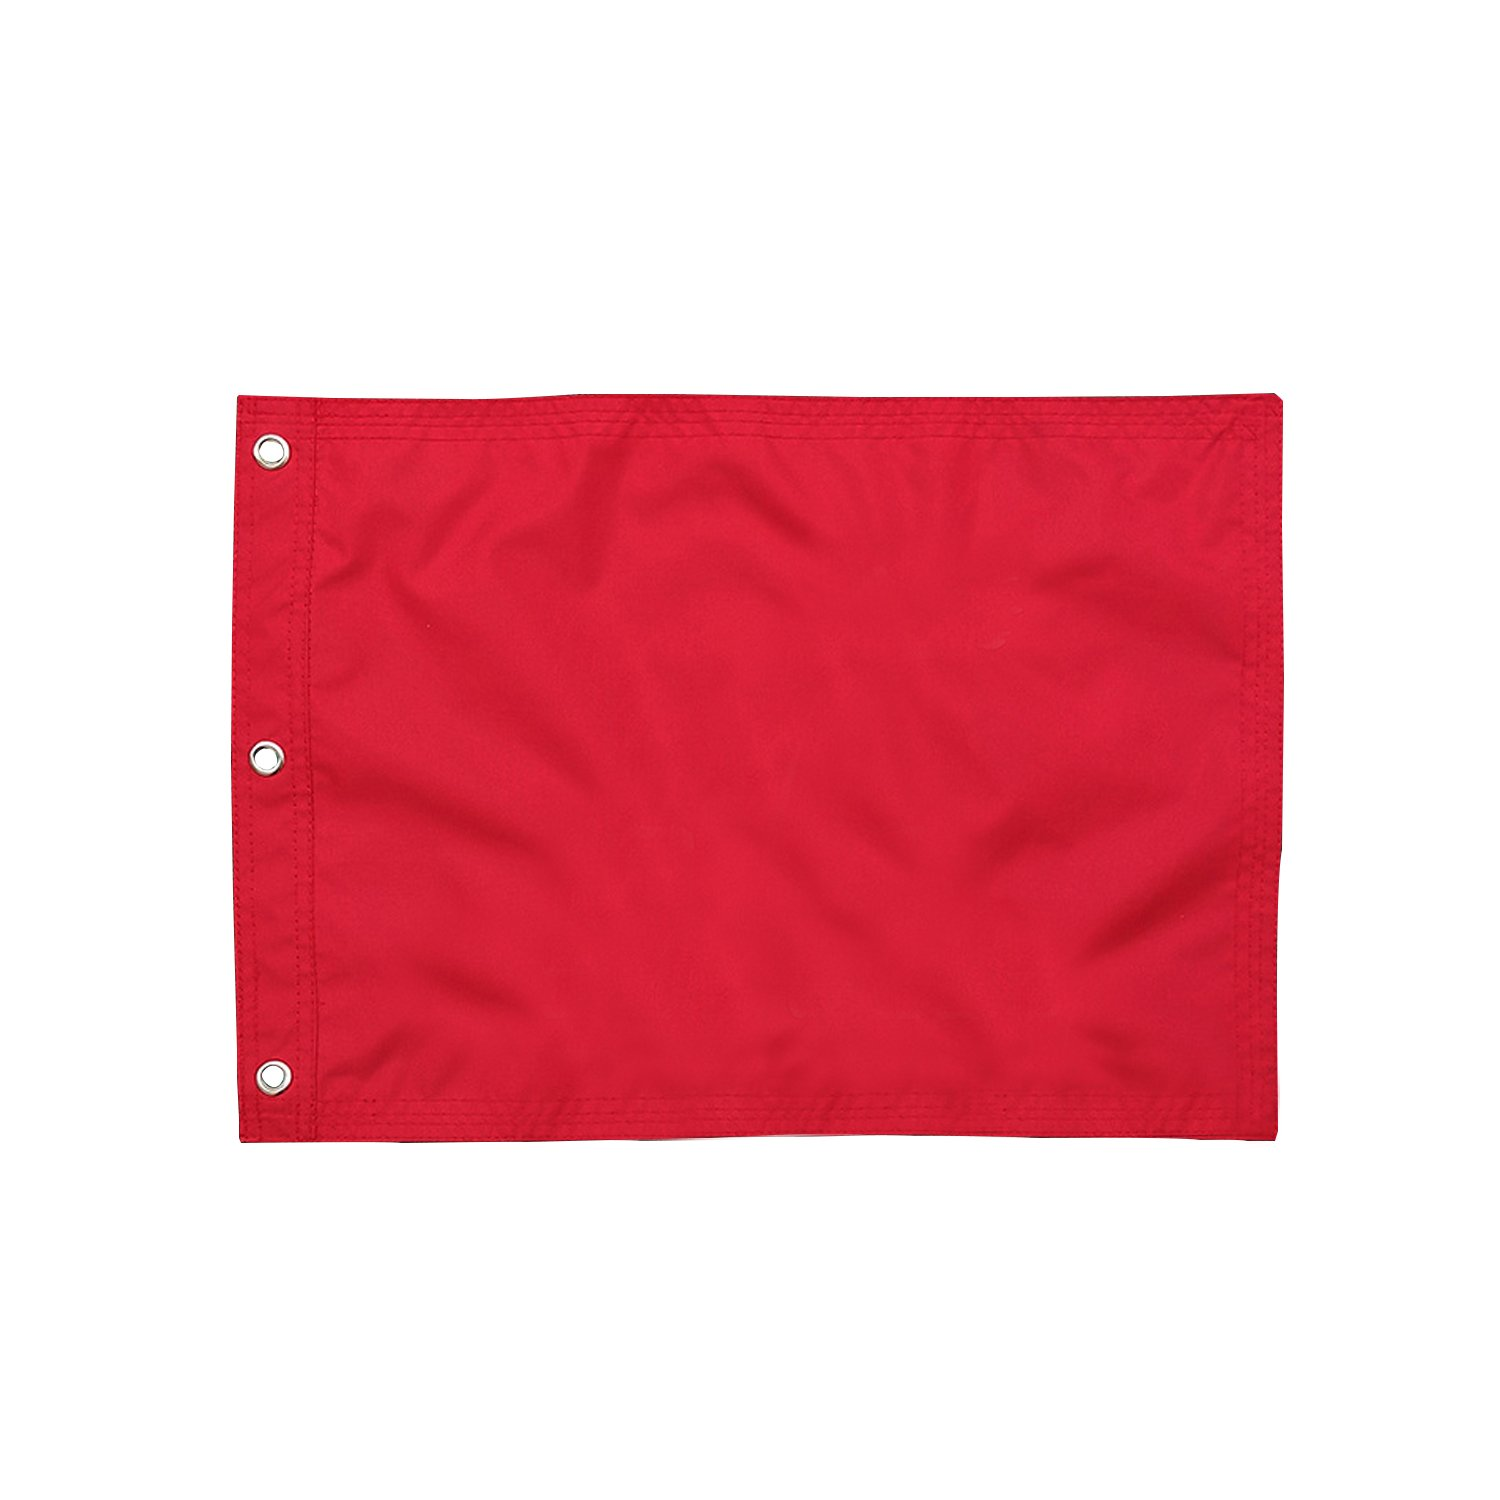 KINGTOP 13''x 20'' Golf Pin Flags, Red